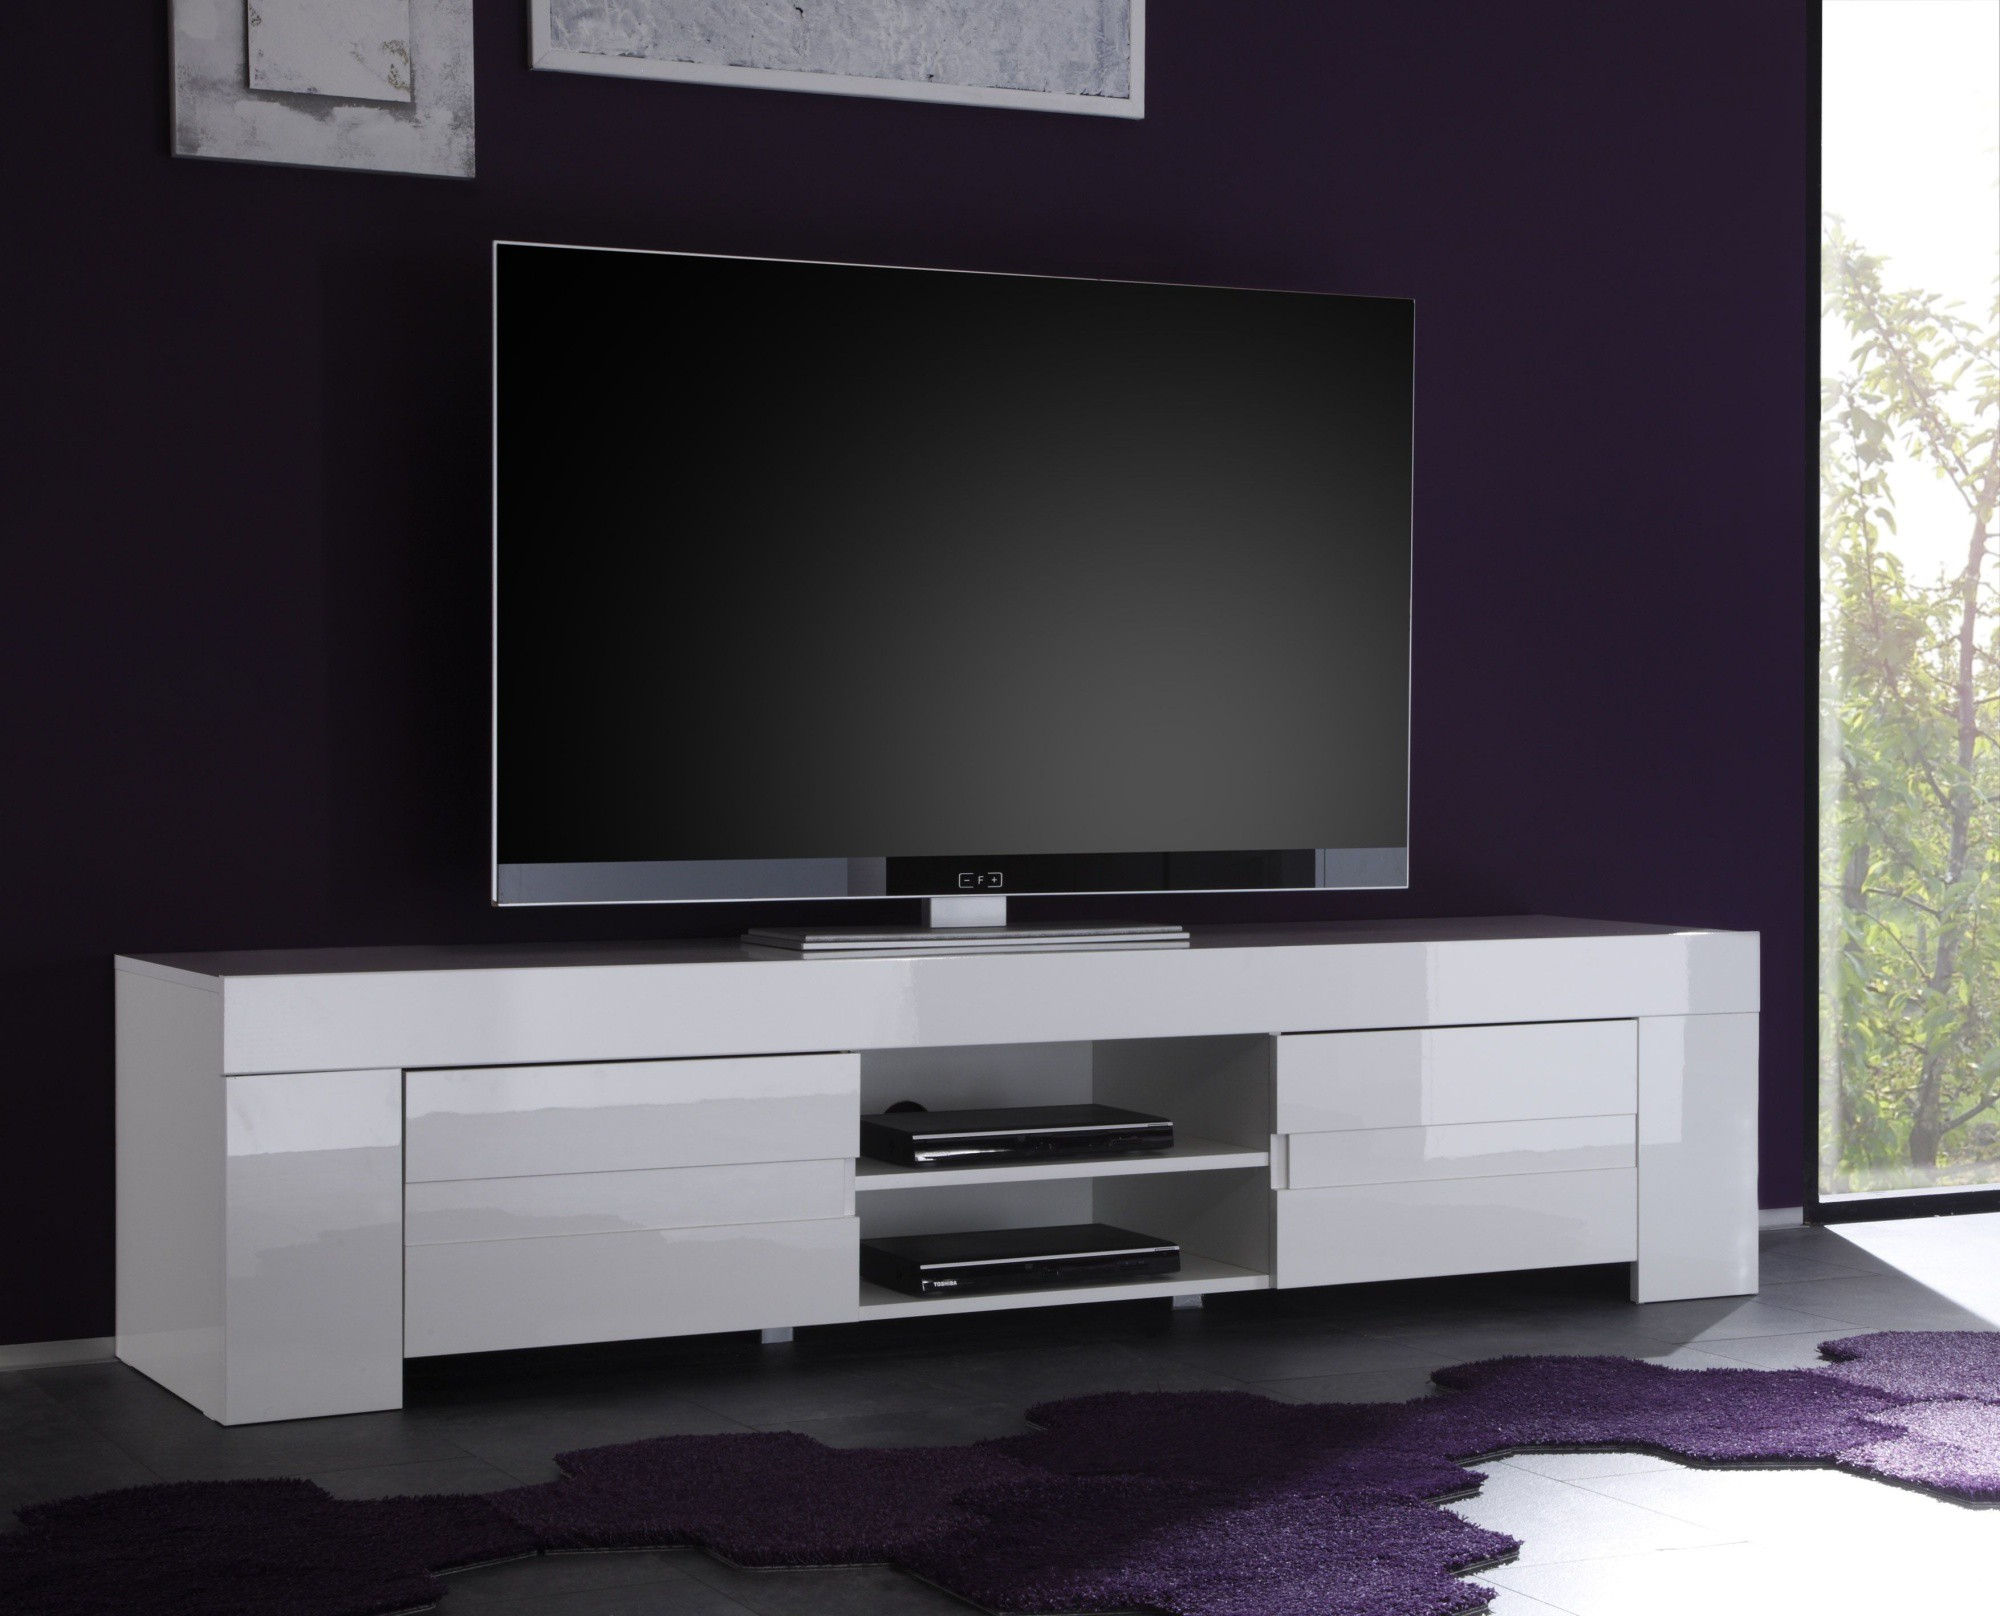 meuble tv laqu noir pas cher id es de d coration int rieure french decor. Black Bedroom Furniture Sets. Home Design Ideas